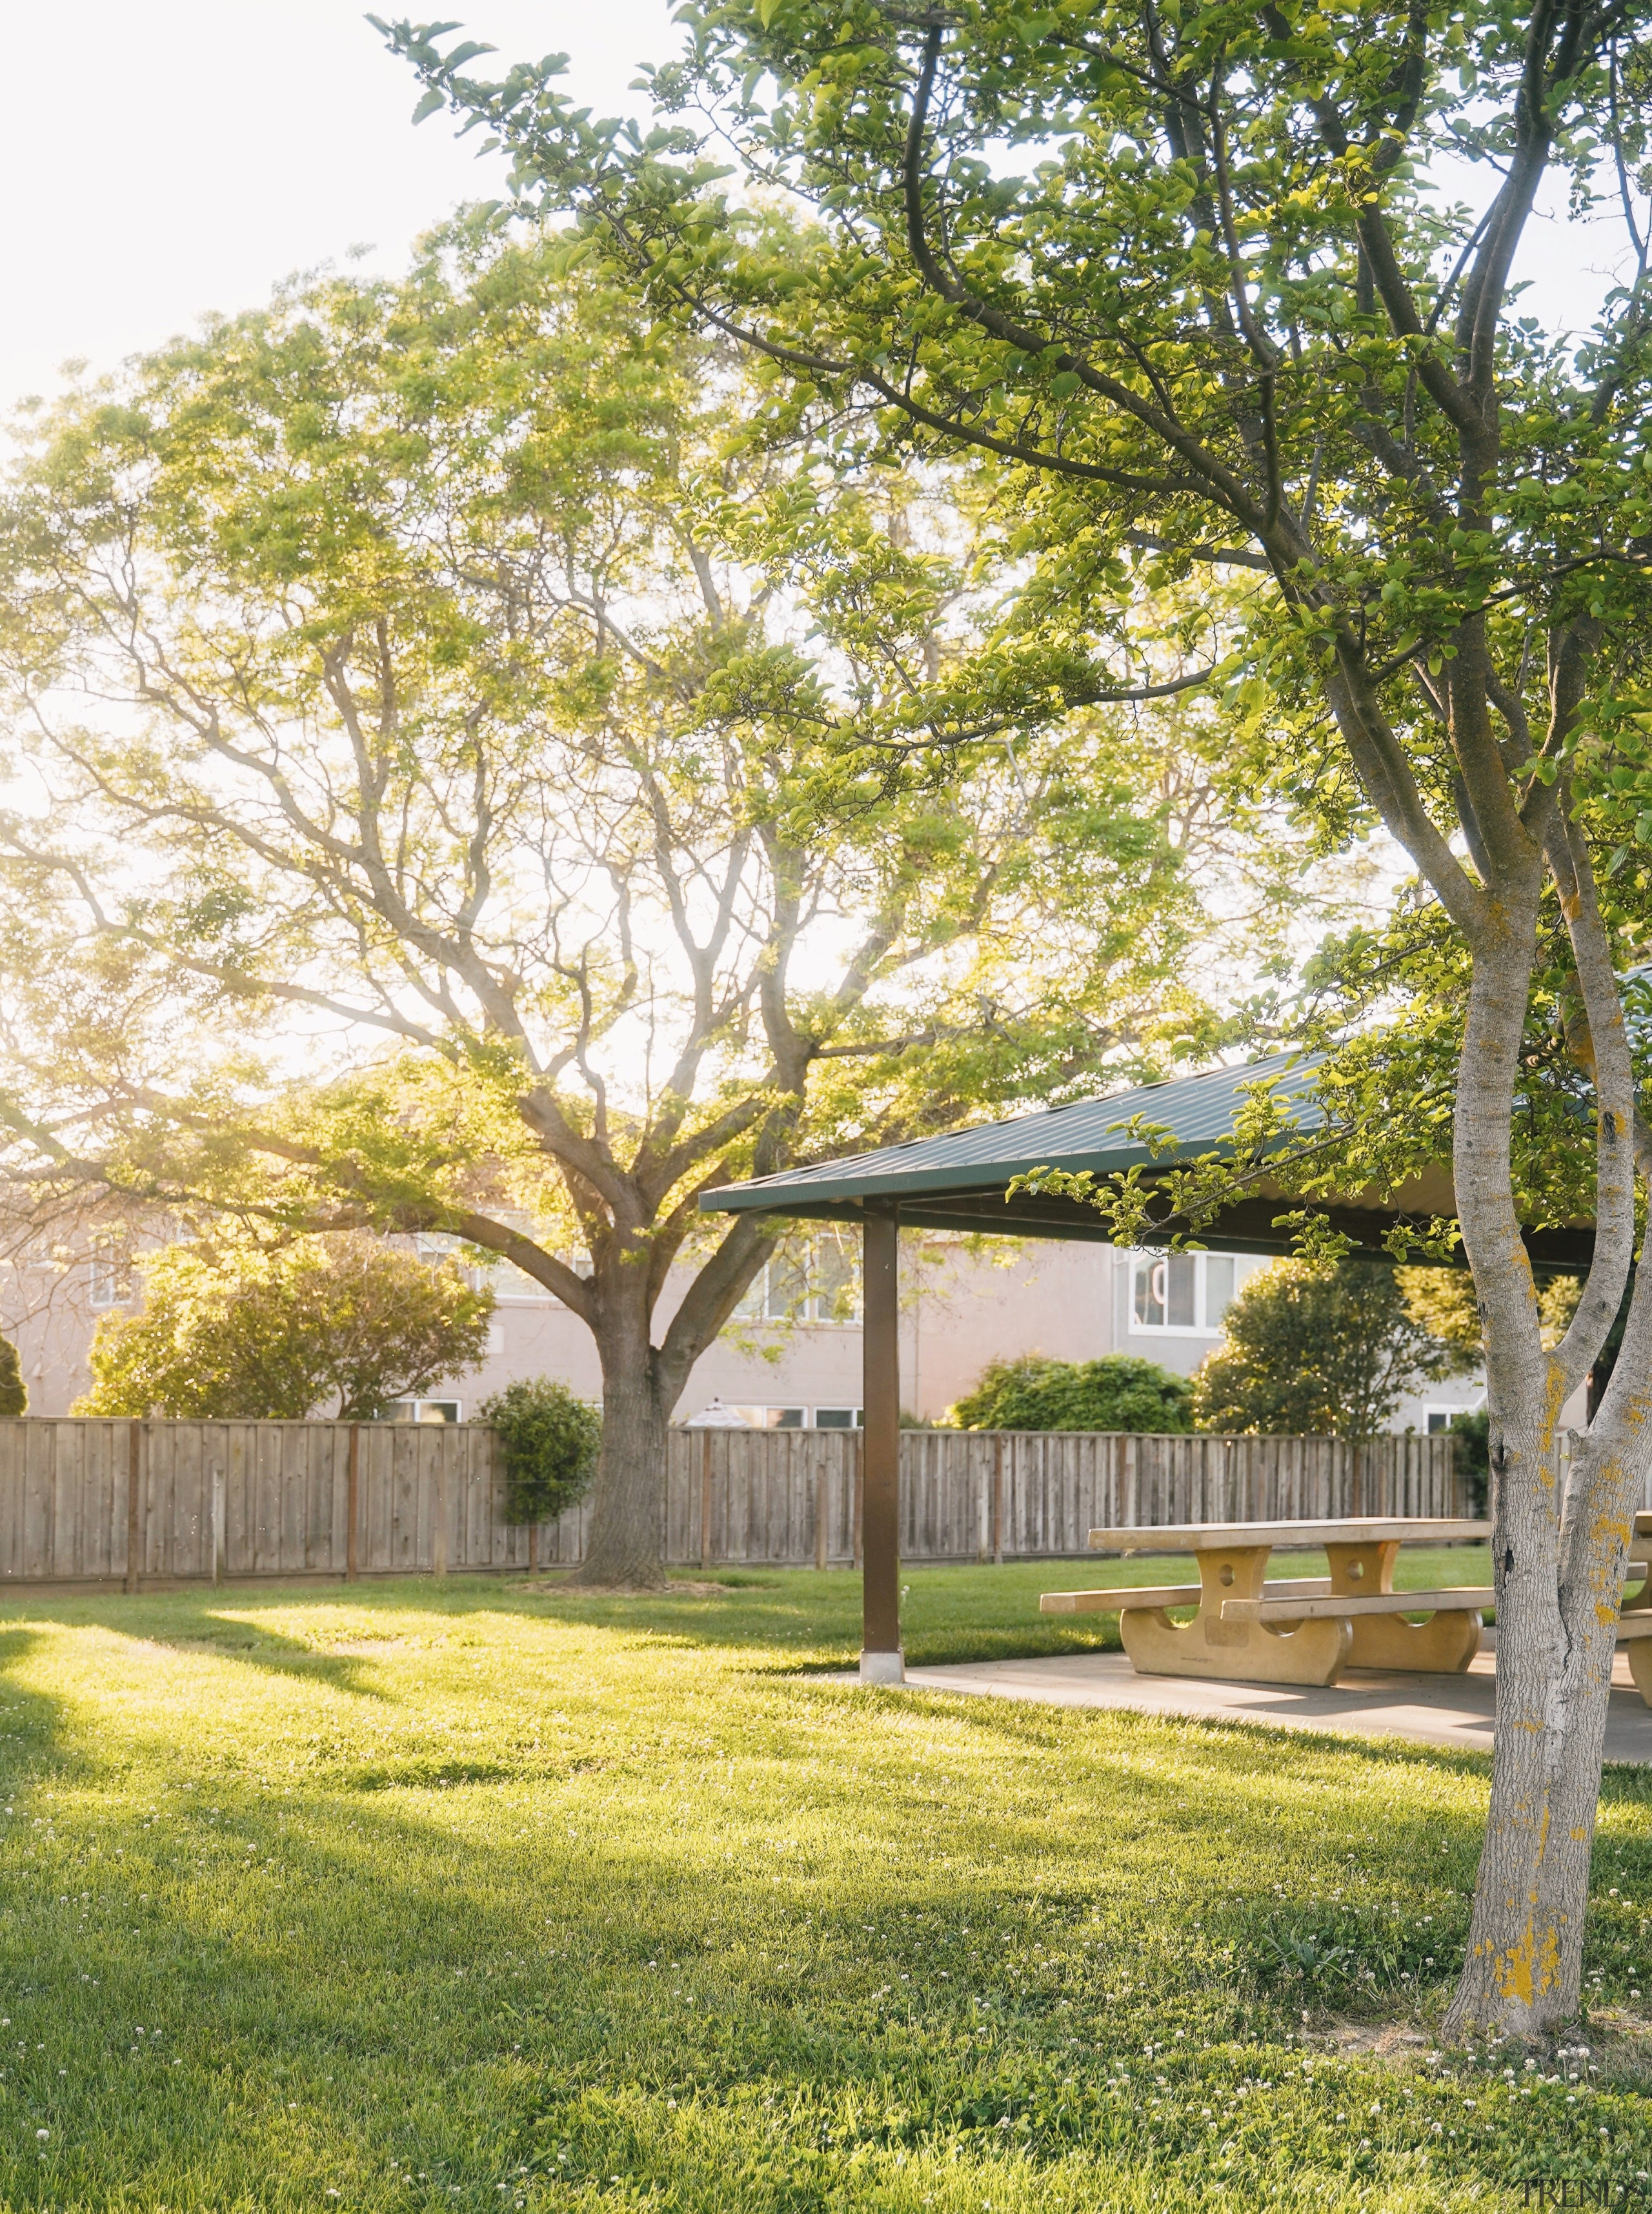 Backgarden with tree -